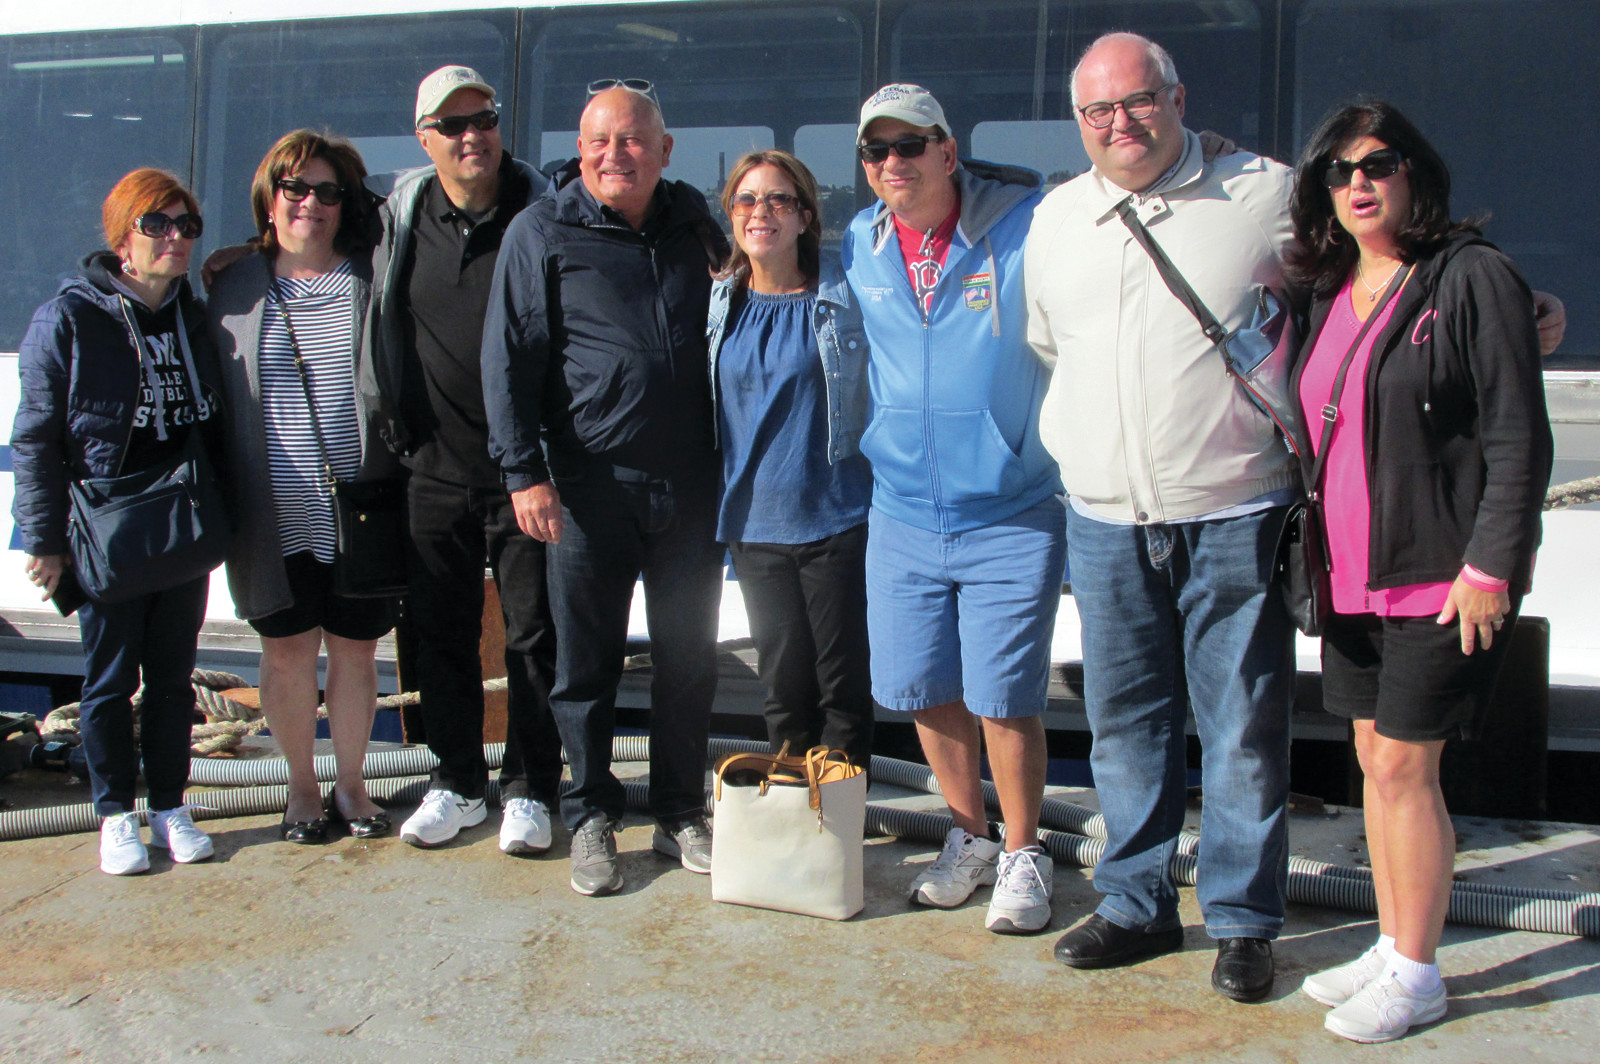 GRAND GUESTS: Lou and Susan Mansolillo, who hosted an old-fashioned New England Clam Bake Monday at their home in Johnston, are joined by school and church officials from Panni Foggia, Italy at the dock in Providence prior to Saturday's tour in Newport.